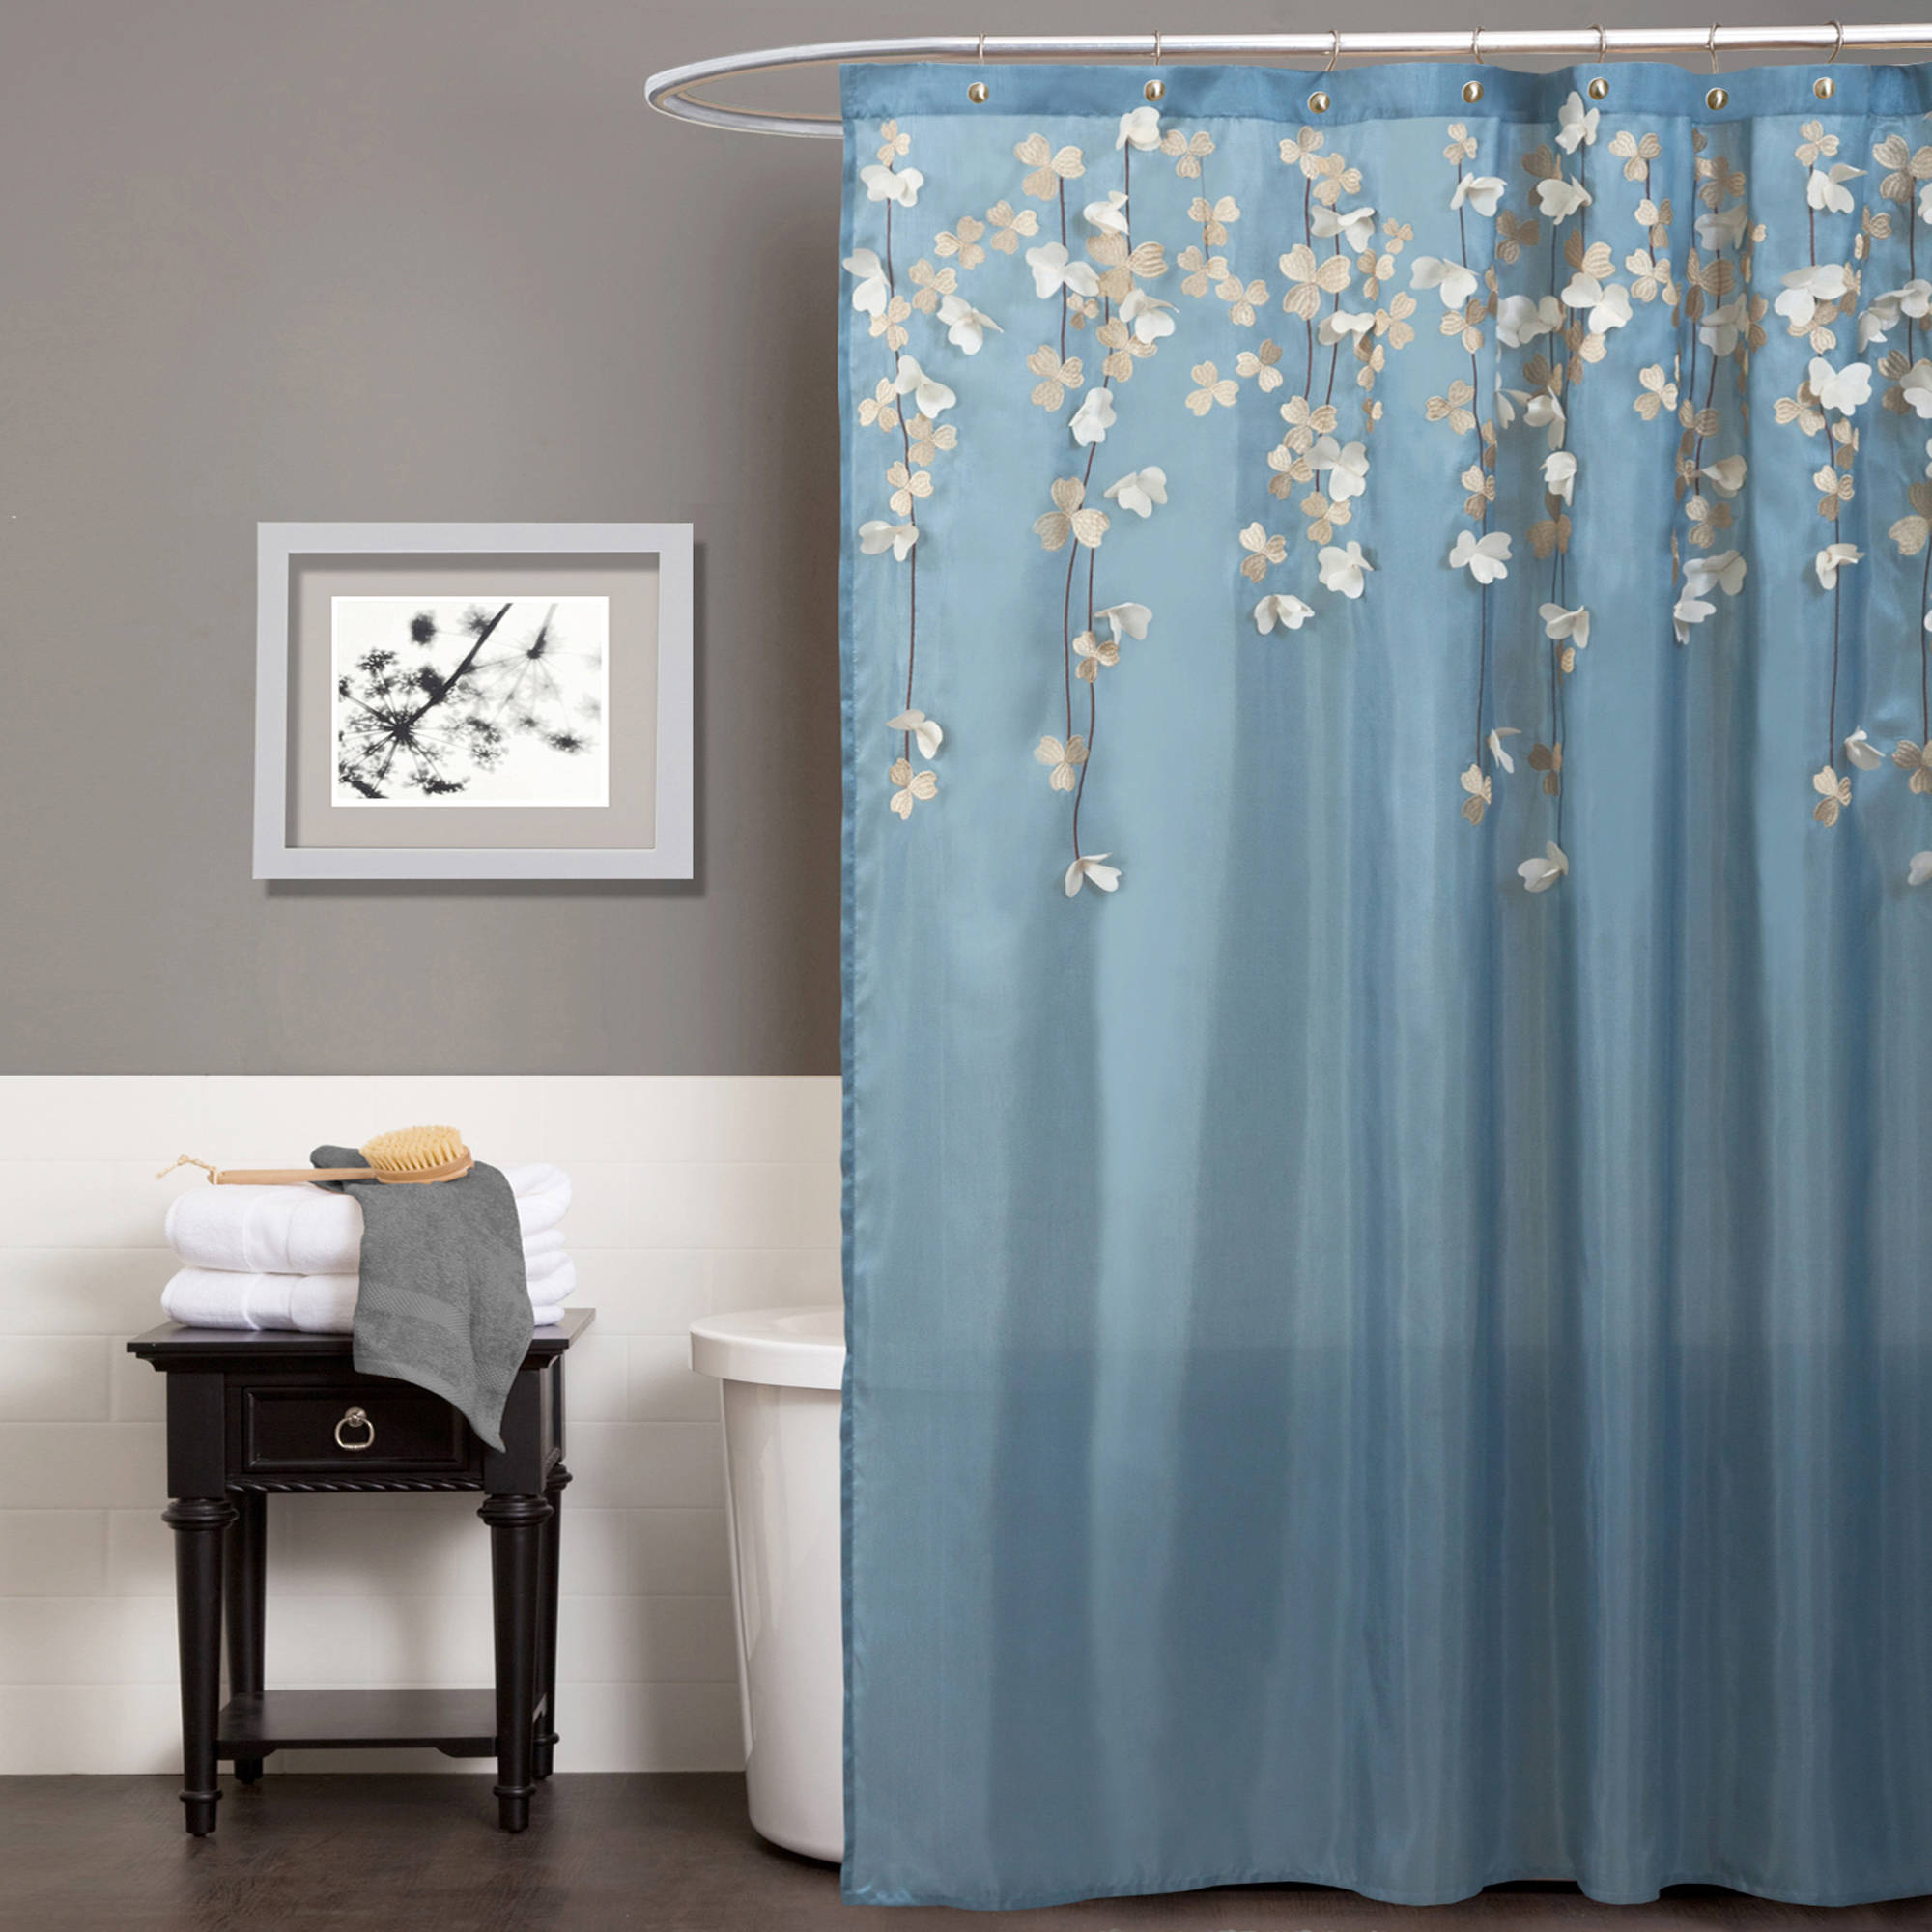 Shower Curtains Walmart intended for size 2000 X 2000